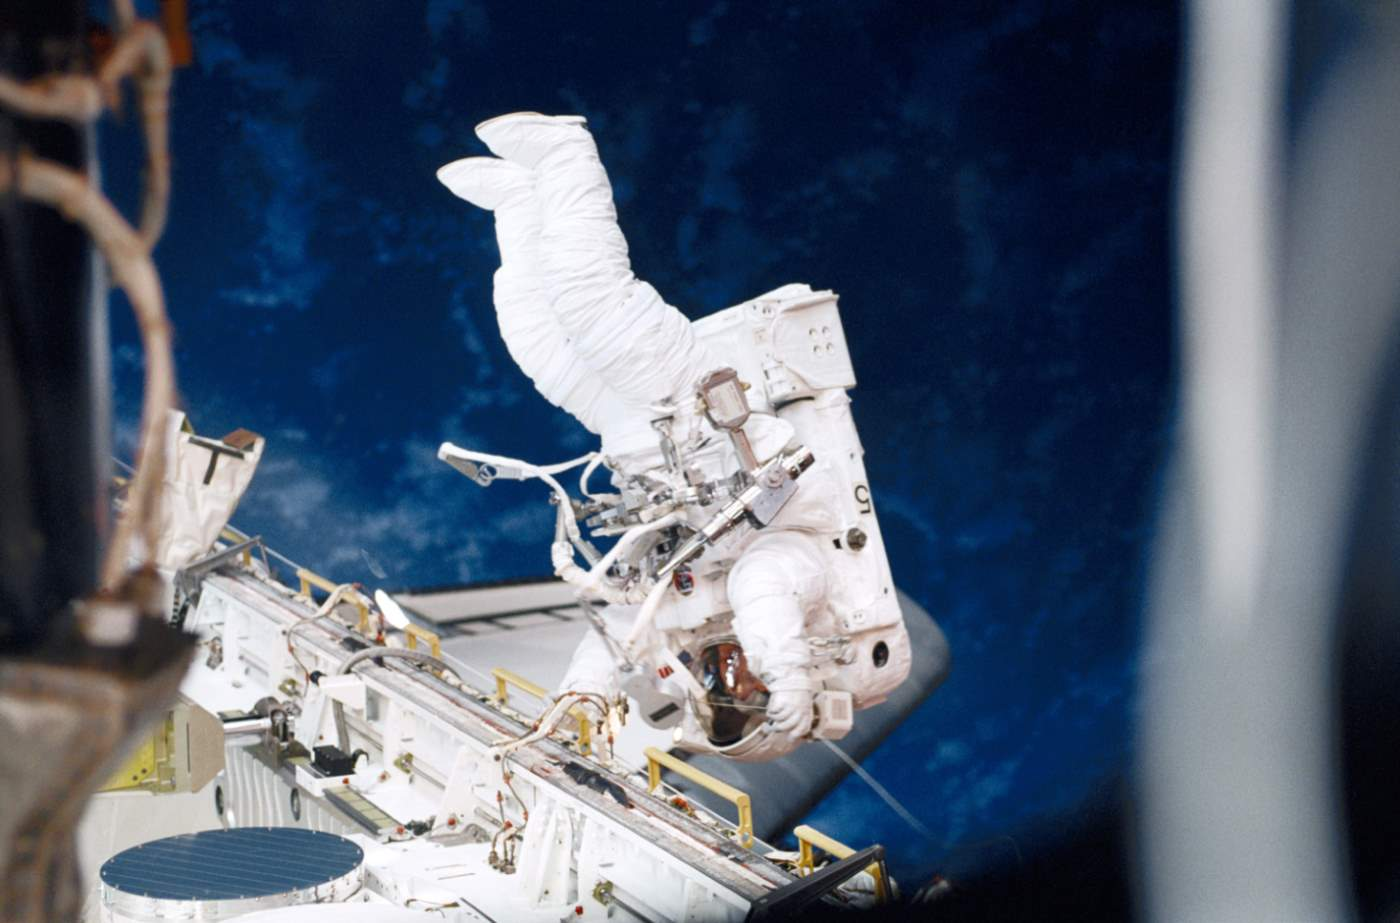 Susan Helms during STS-102 EVA 1, the longest spacewalk in history